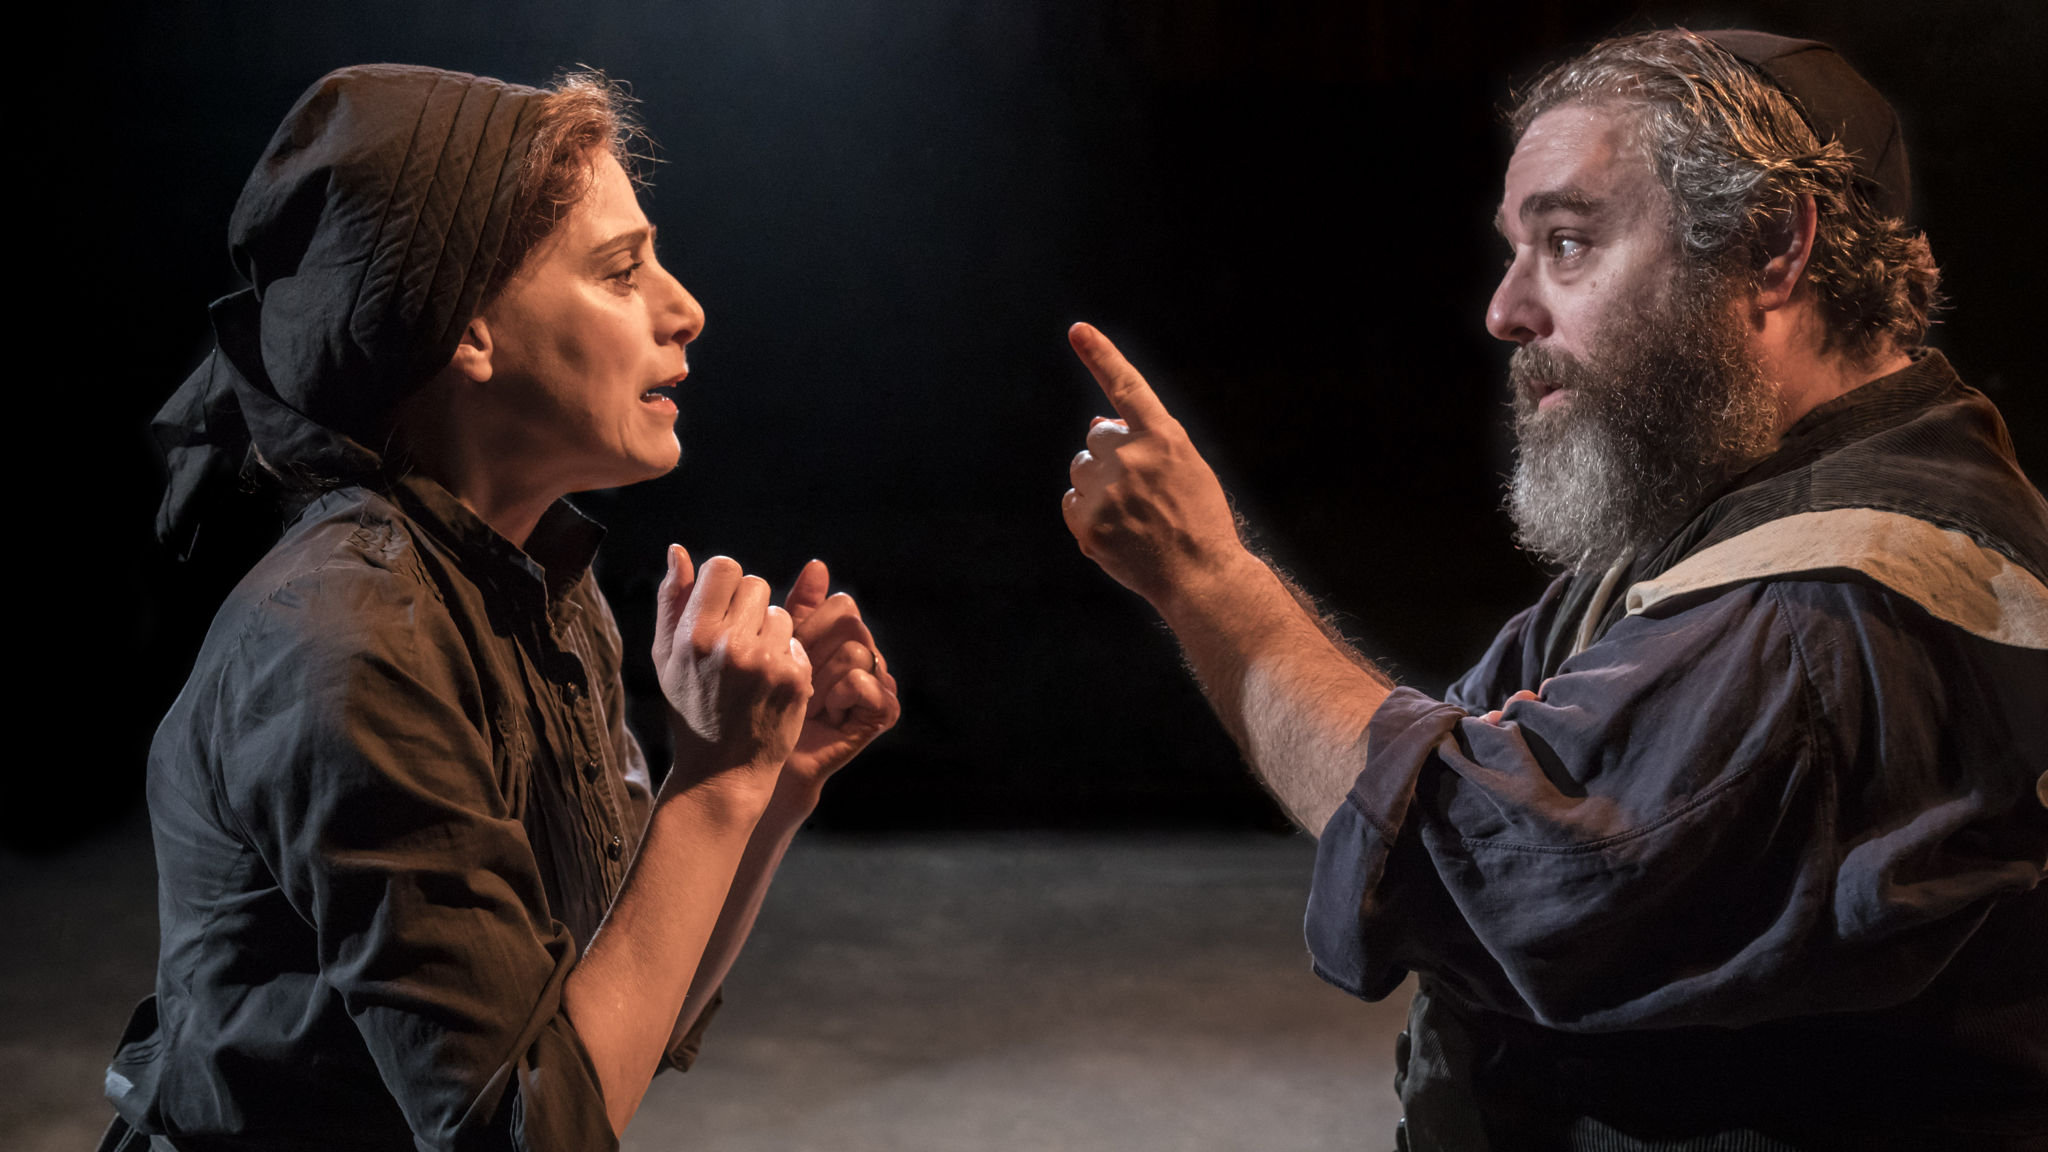 Fiddler on the Roof at the Menier Chocolate Factory, London